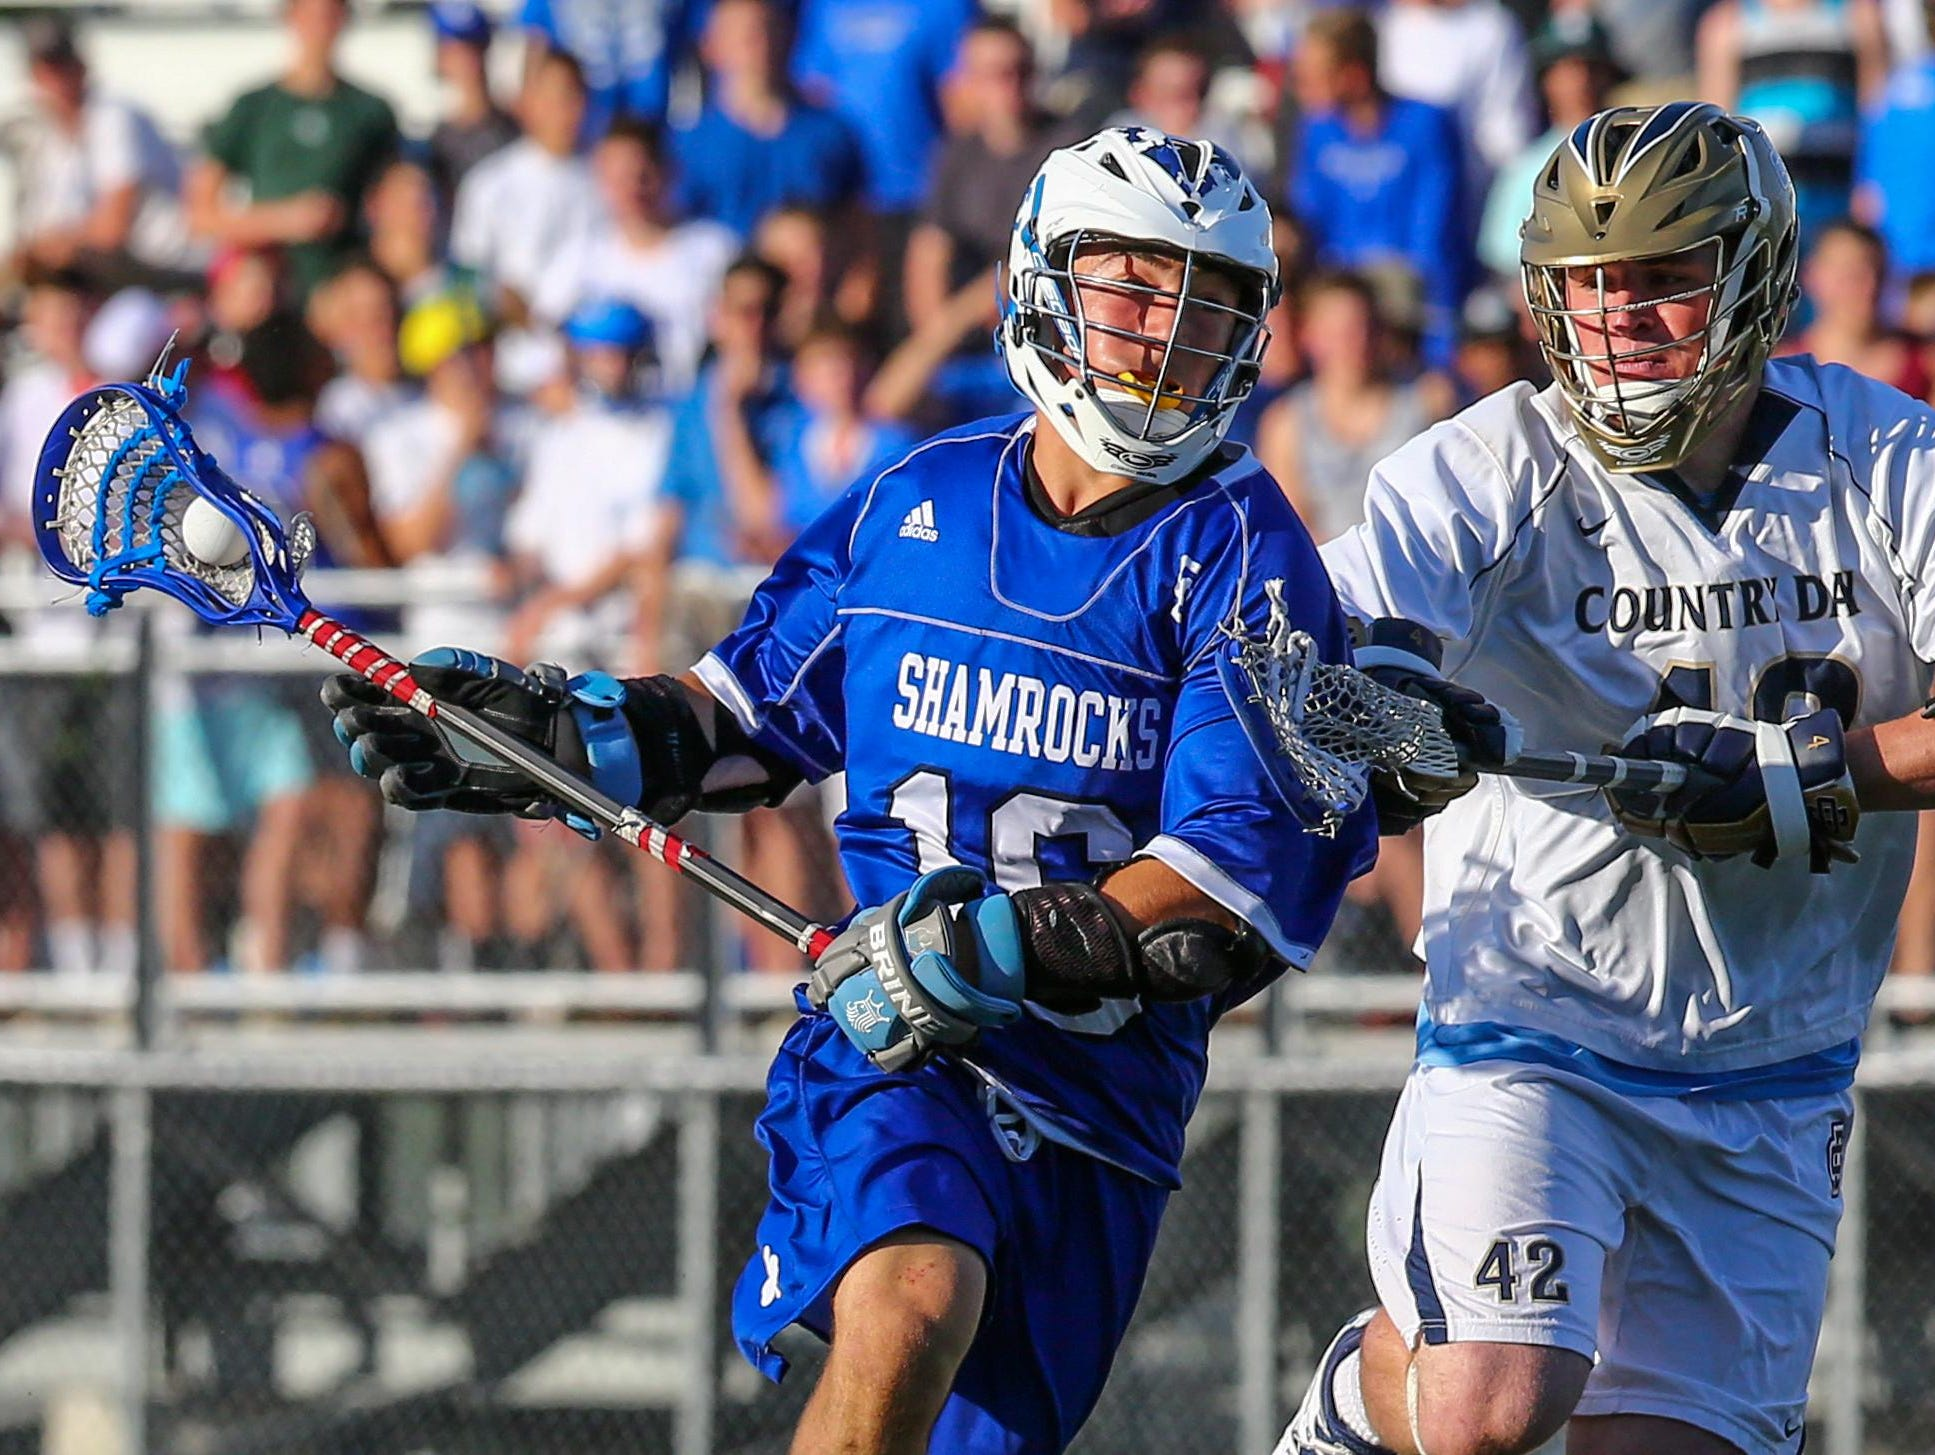 Catholic Central's Nick Capatina (left) shields off Country Day's Matt MacLean in Wednesday's Division 1 semifinal.